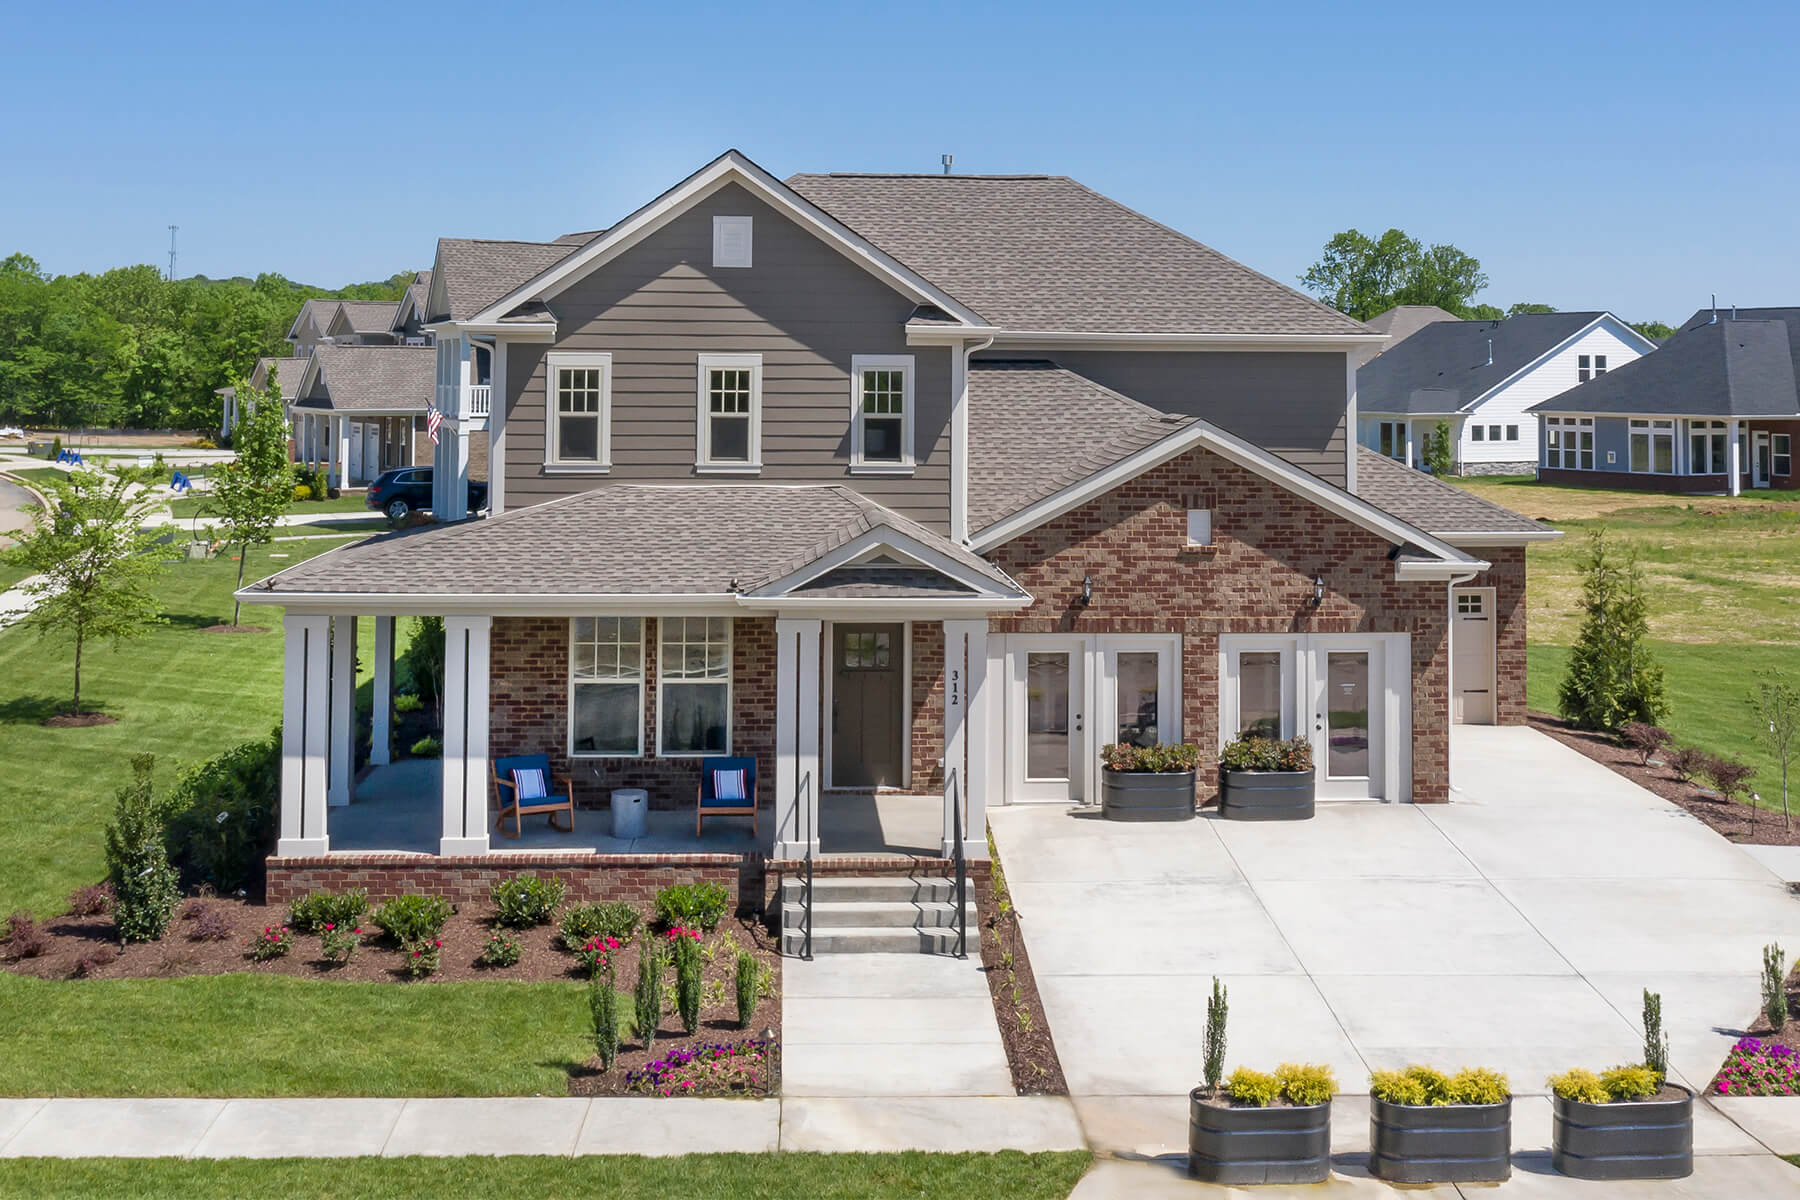 60' Lots by Lennar - Durham Farms New Homes for Sale in Hendersonville, TN